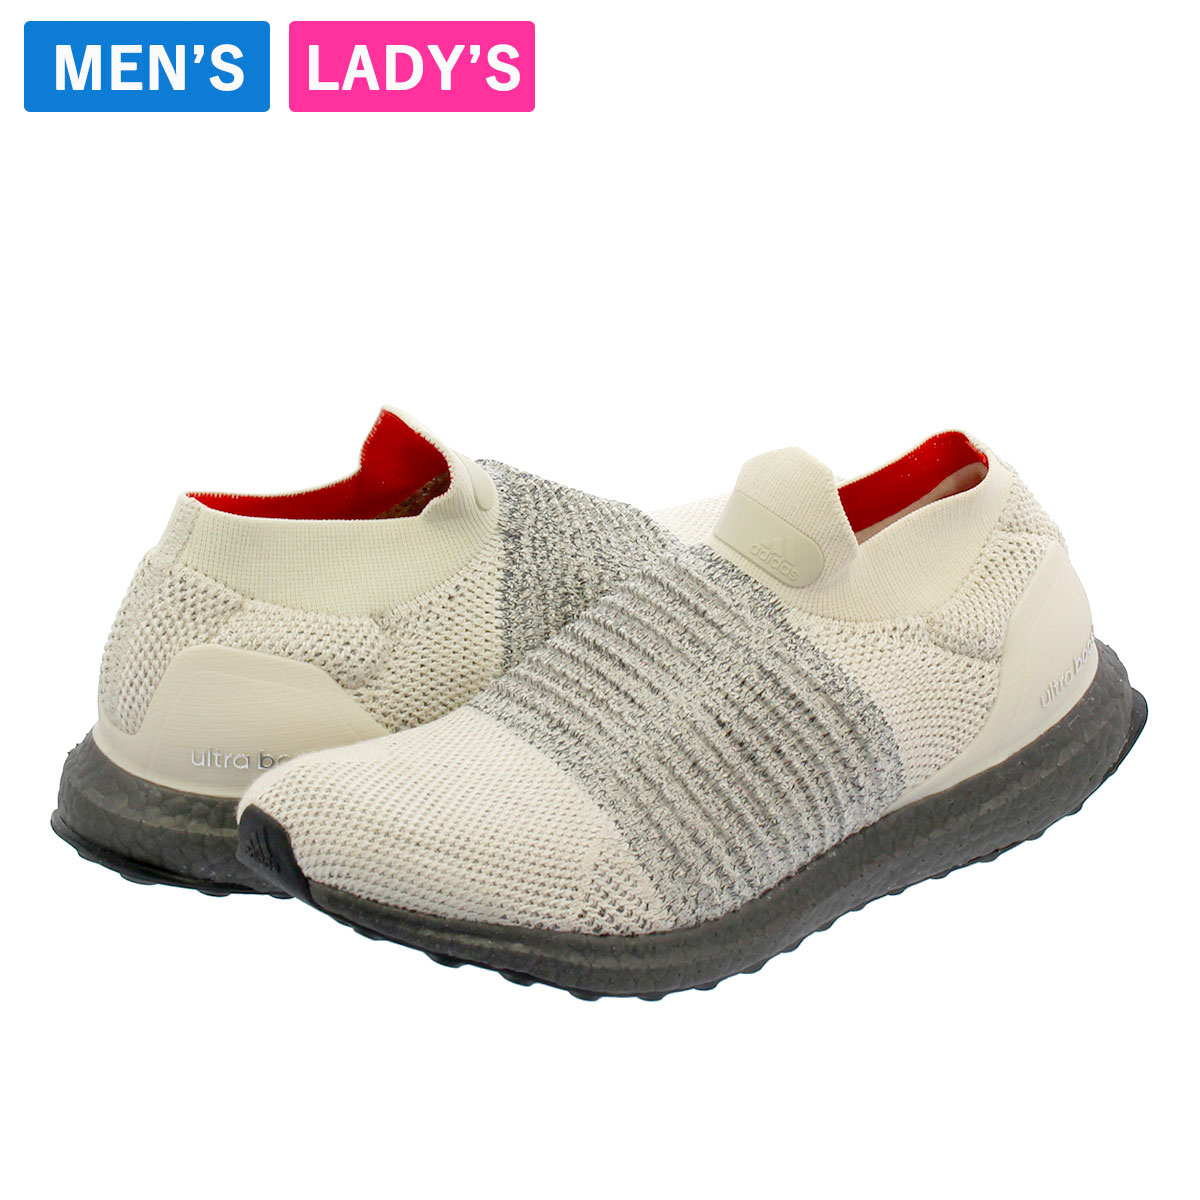 c5b3fb092f1da adidas UltraBOOST LACELESS Adidas ultra boost raceless CLEAR BROWN CLOUD  WHITE CARBON cm8263